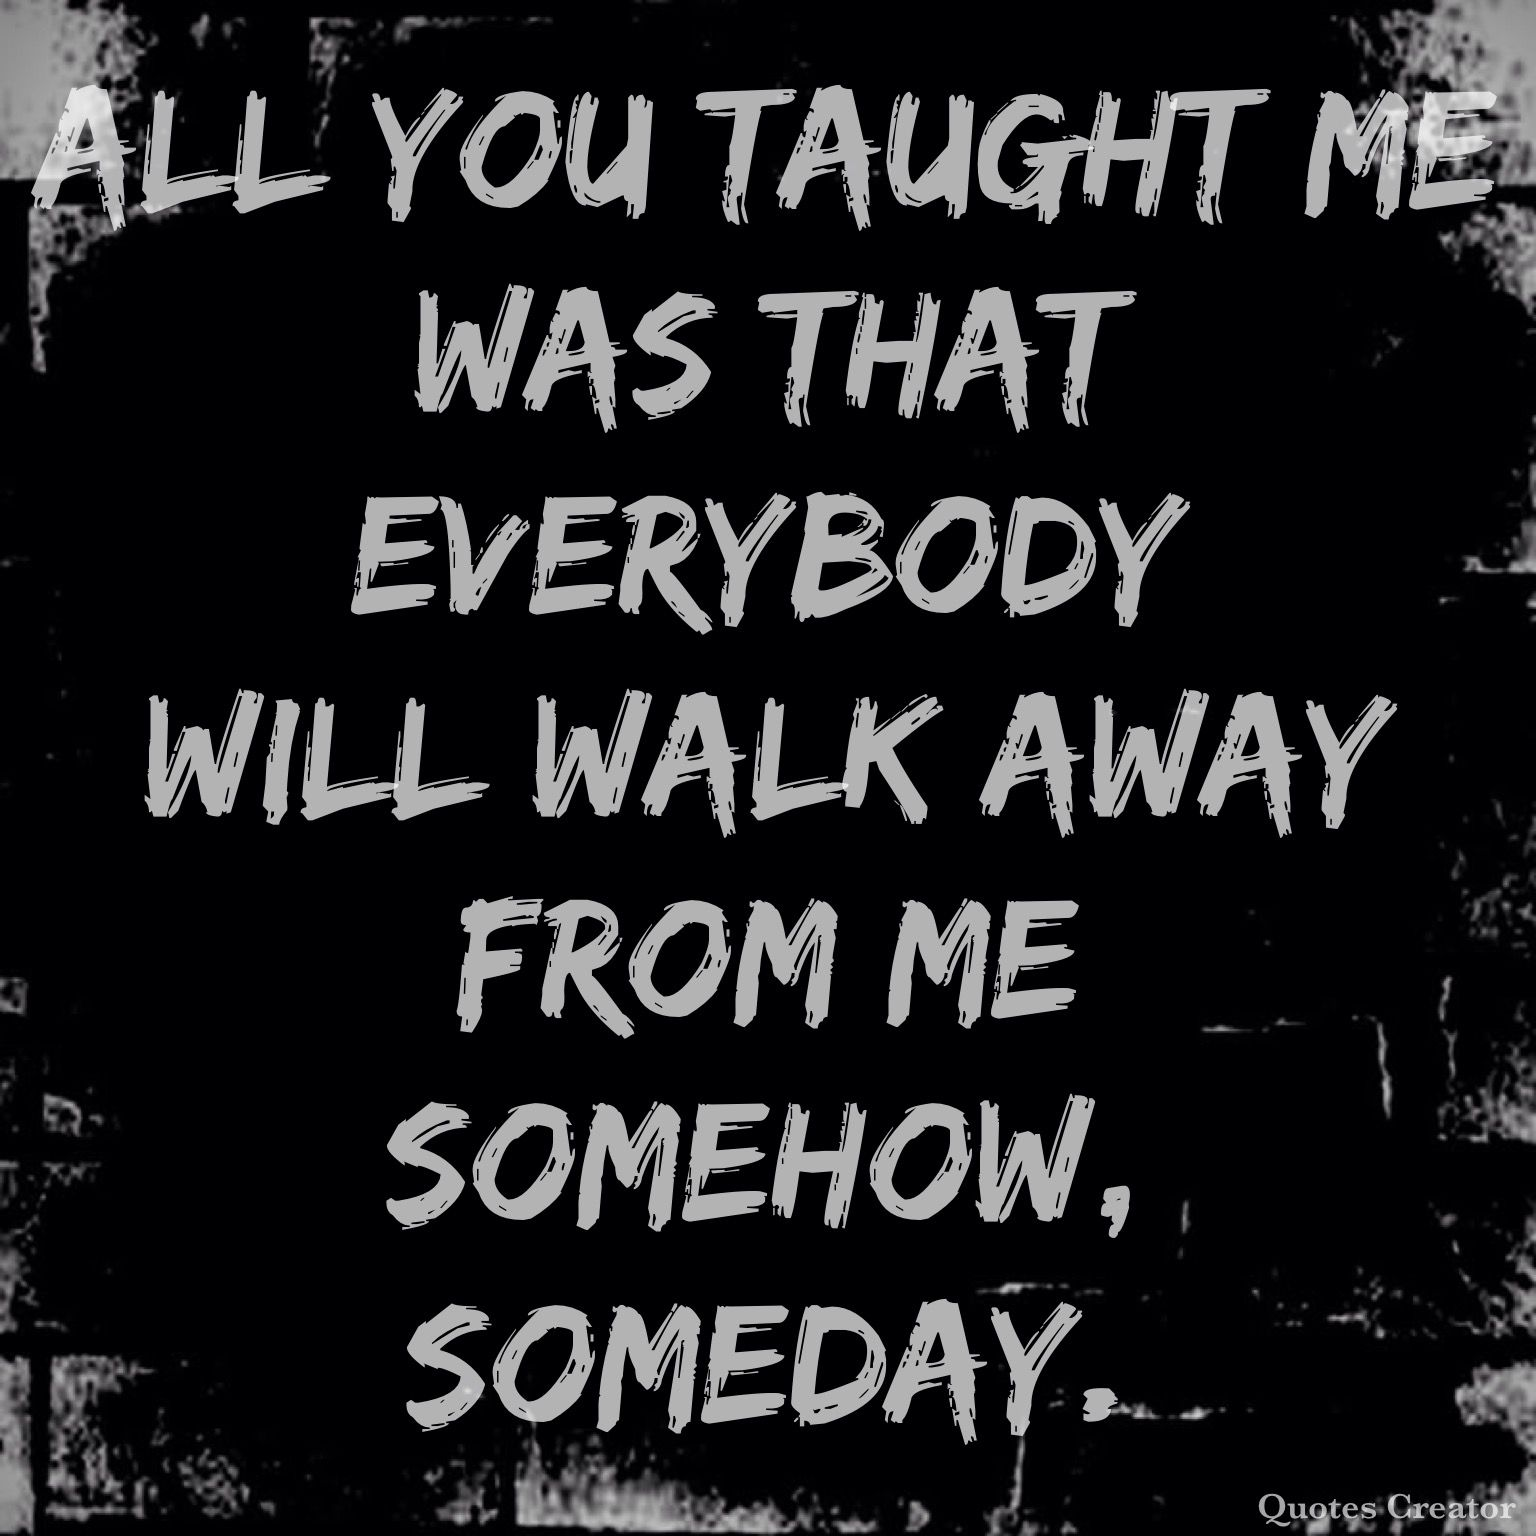 All you taught me